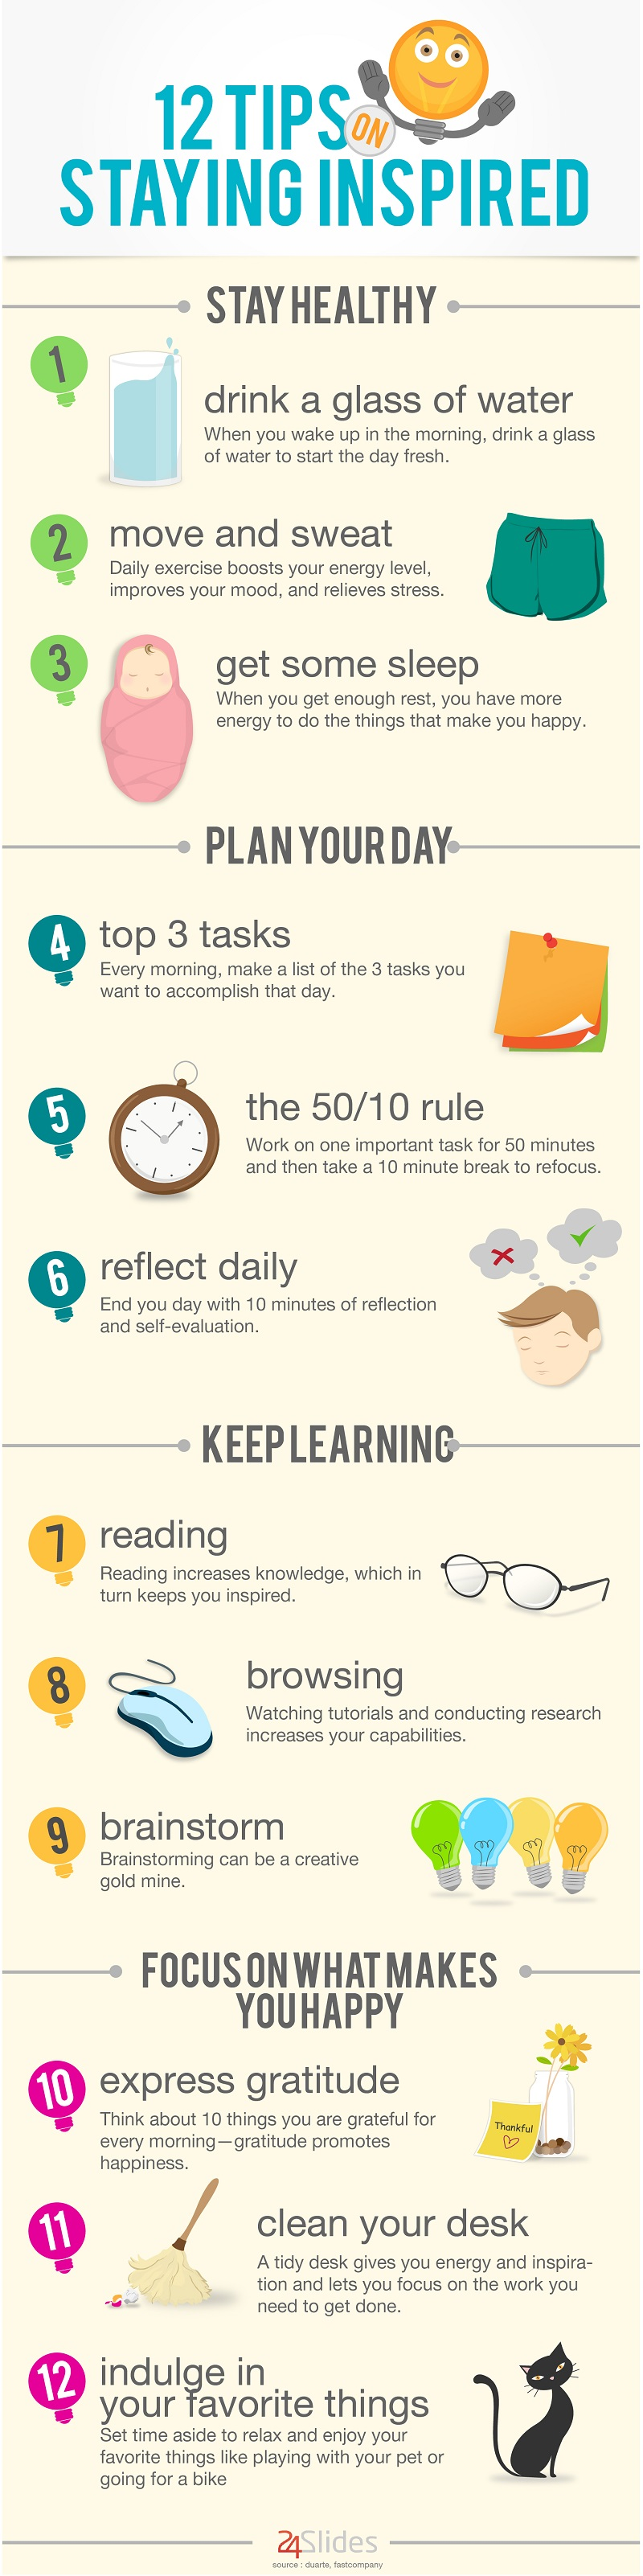 http://visual.ly/12-tips-staying-inspired